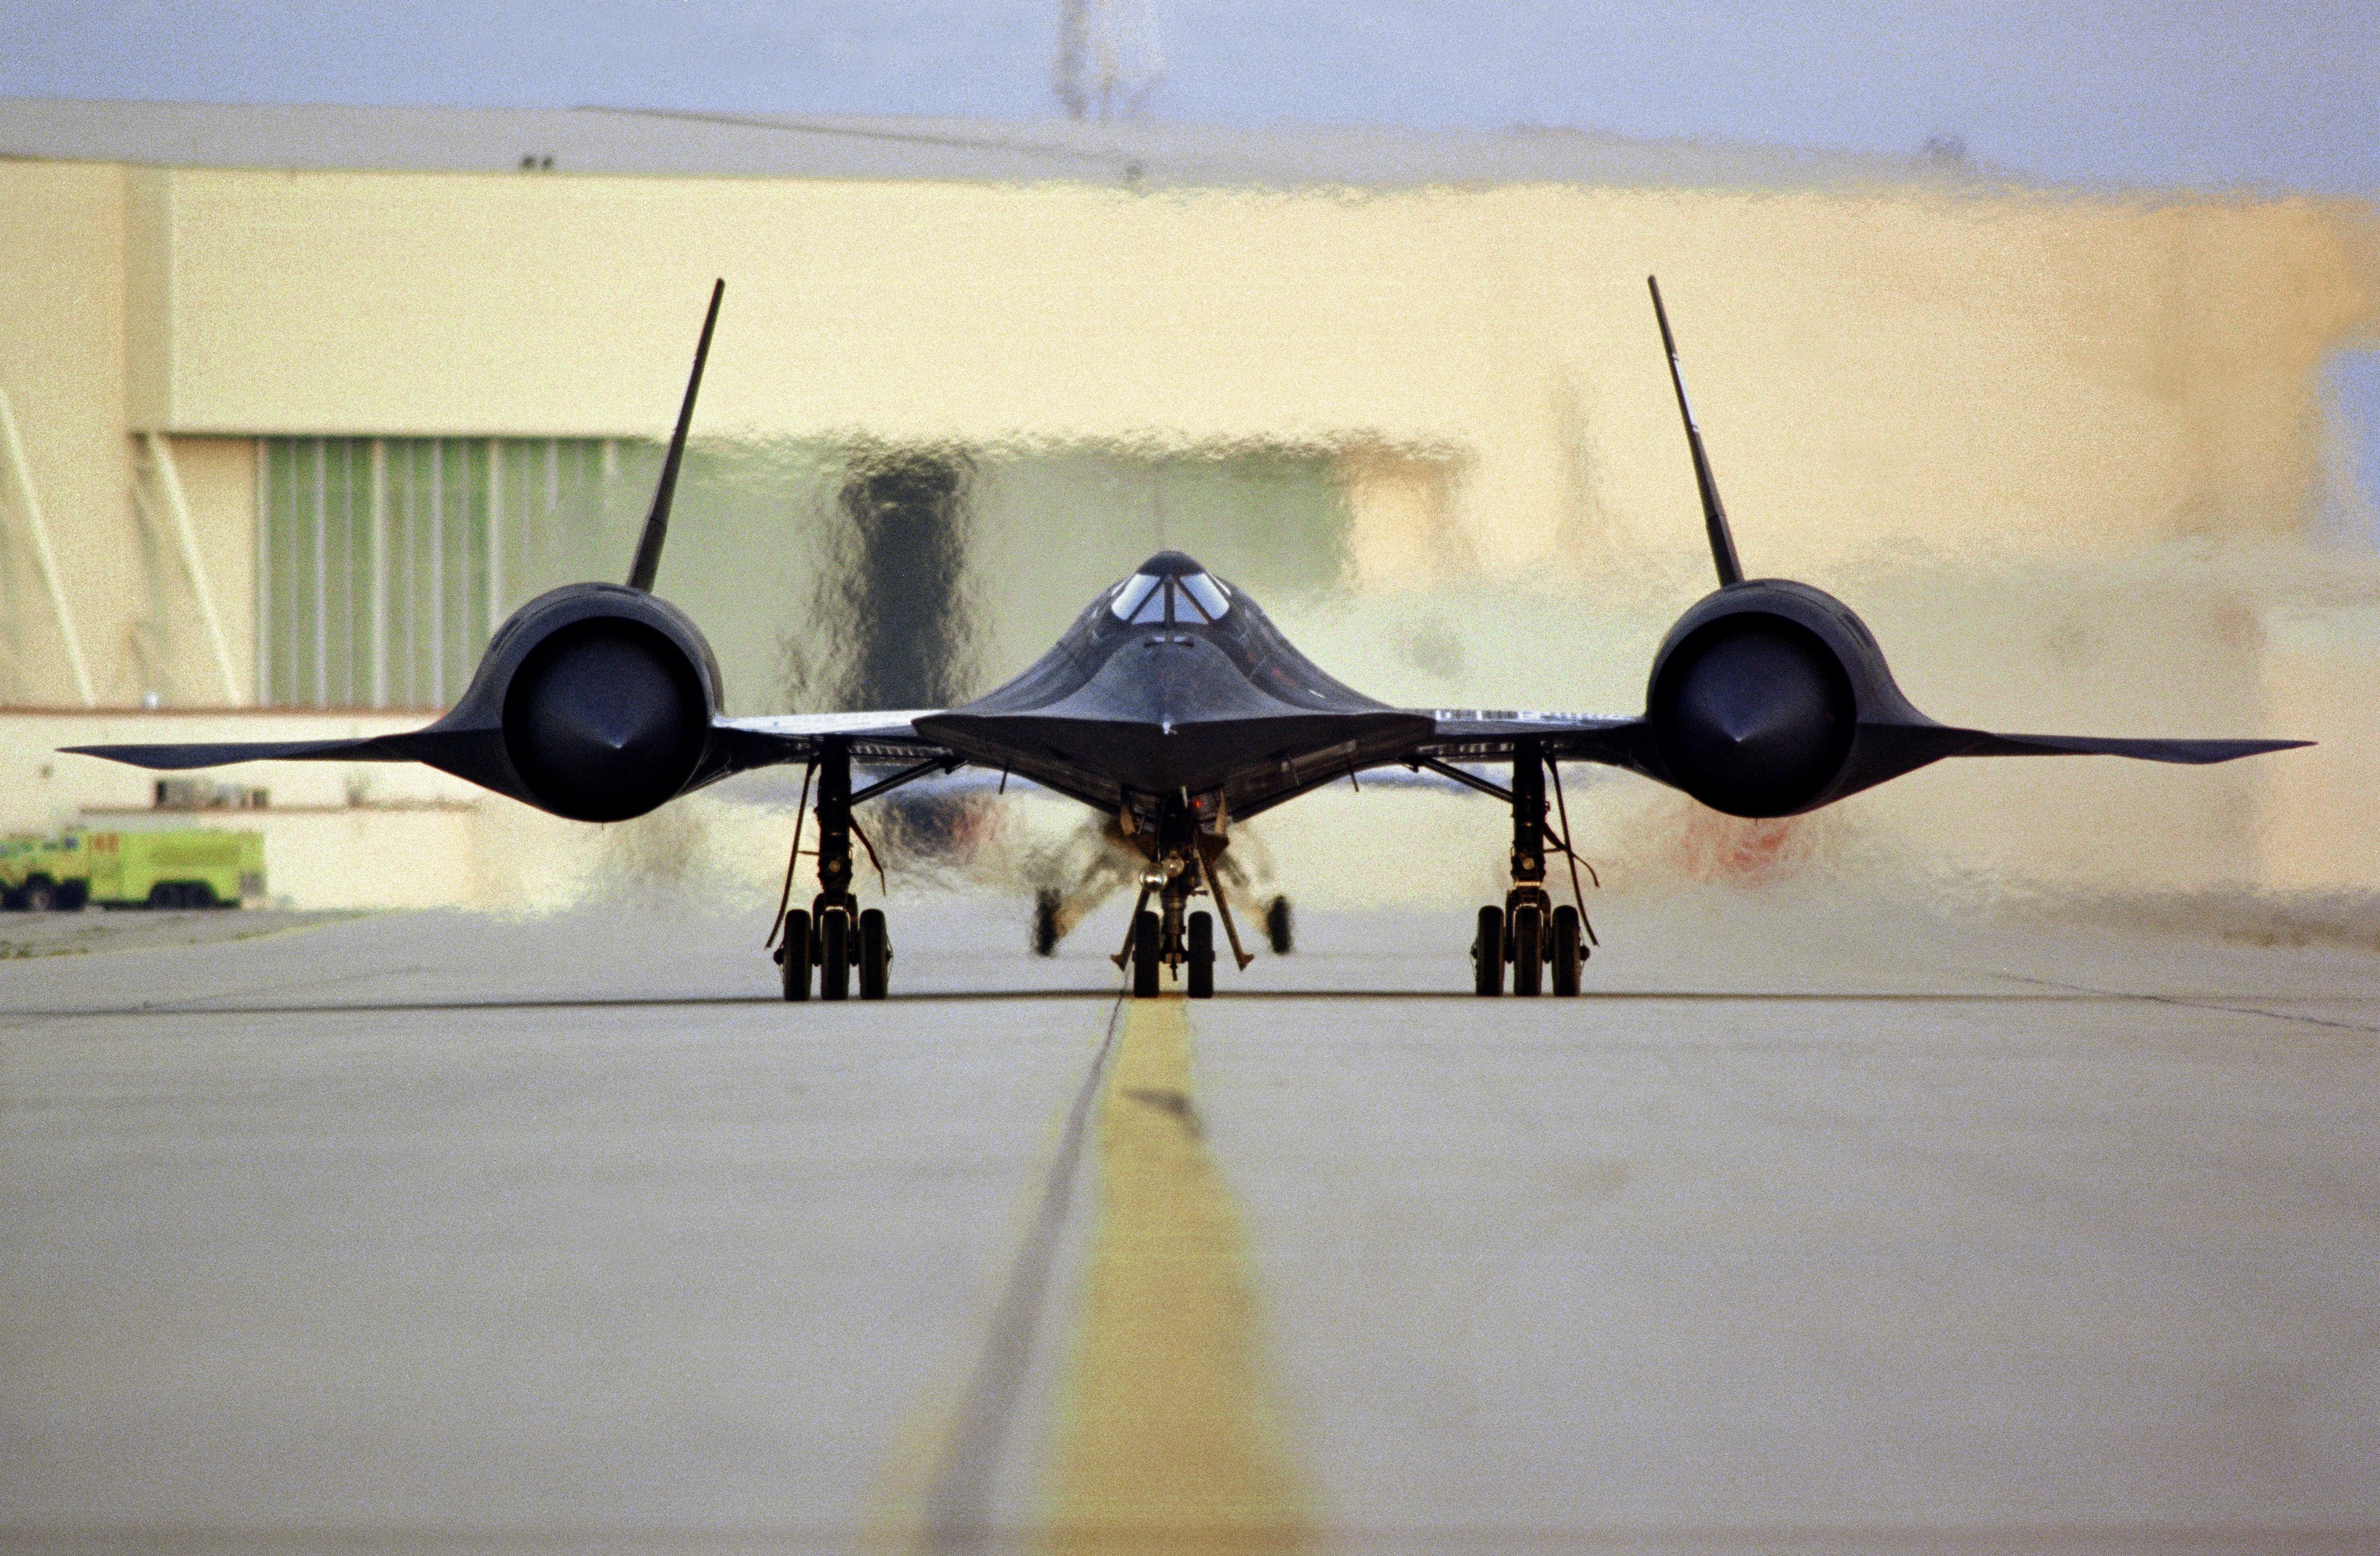 Lockheed sr 71 blackbird 4k ultra hd wallpaper - Sr 71 wallpaper ...